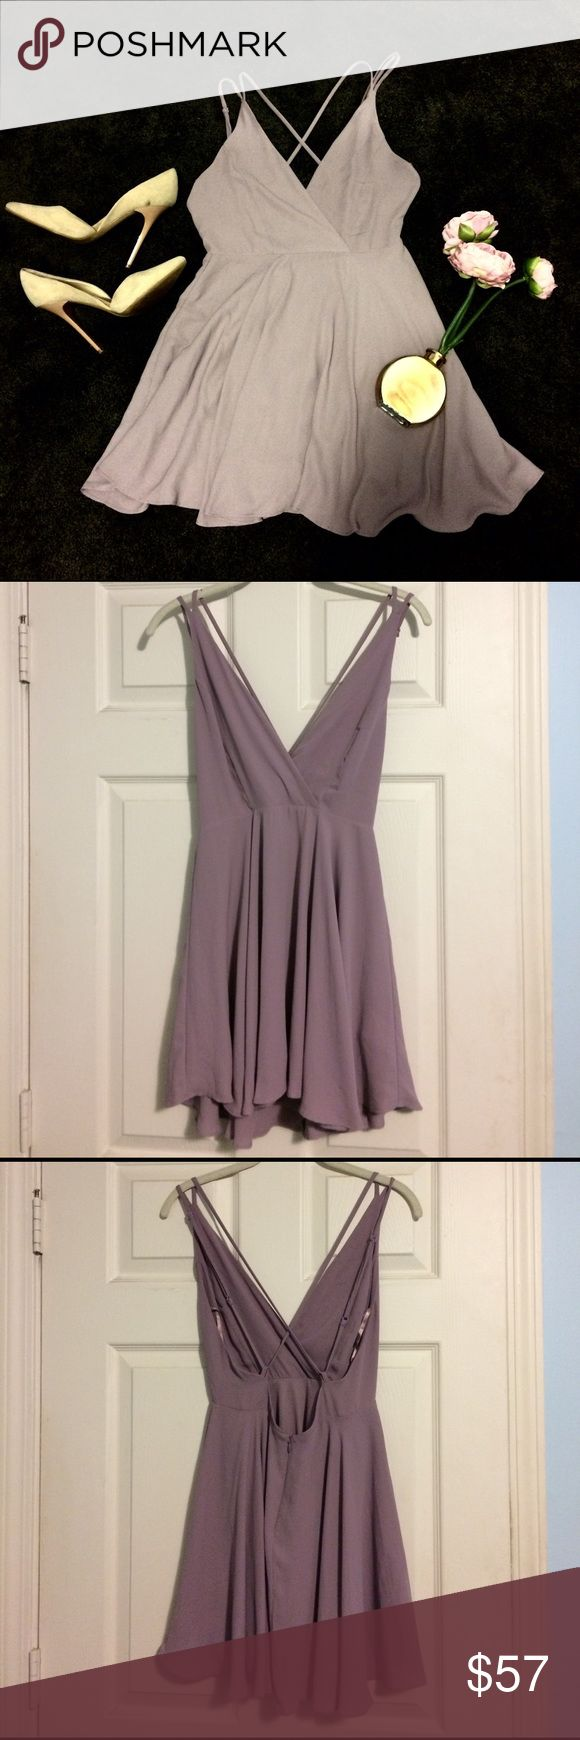 Purple chiffon kimichi blue dress urban outfitters NWOT. I LOVE LOVE LOVE this dress and am sad to let it go, but it doesn't fit me right anymore. It is a dusty purple chiffon dress, from Urban Outfitters kimichi blue. Strappy crossback and zip up skirt. Such a pretty dress. Looking to find this in medium. Still selling it in small. Never wore it anywhere but tags were removed. ❌no trades 💌ships same or next day except weekends Urban Outfitters Dresses